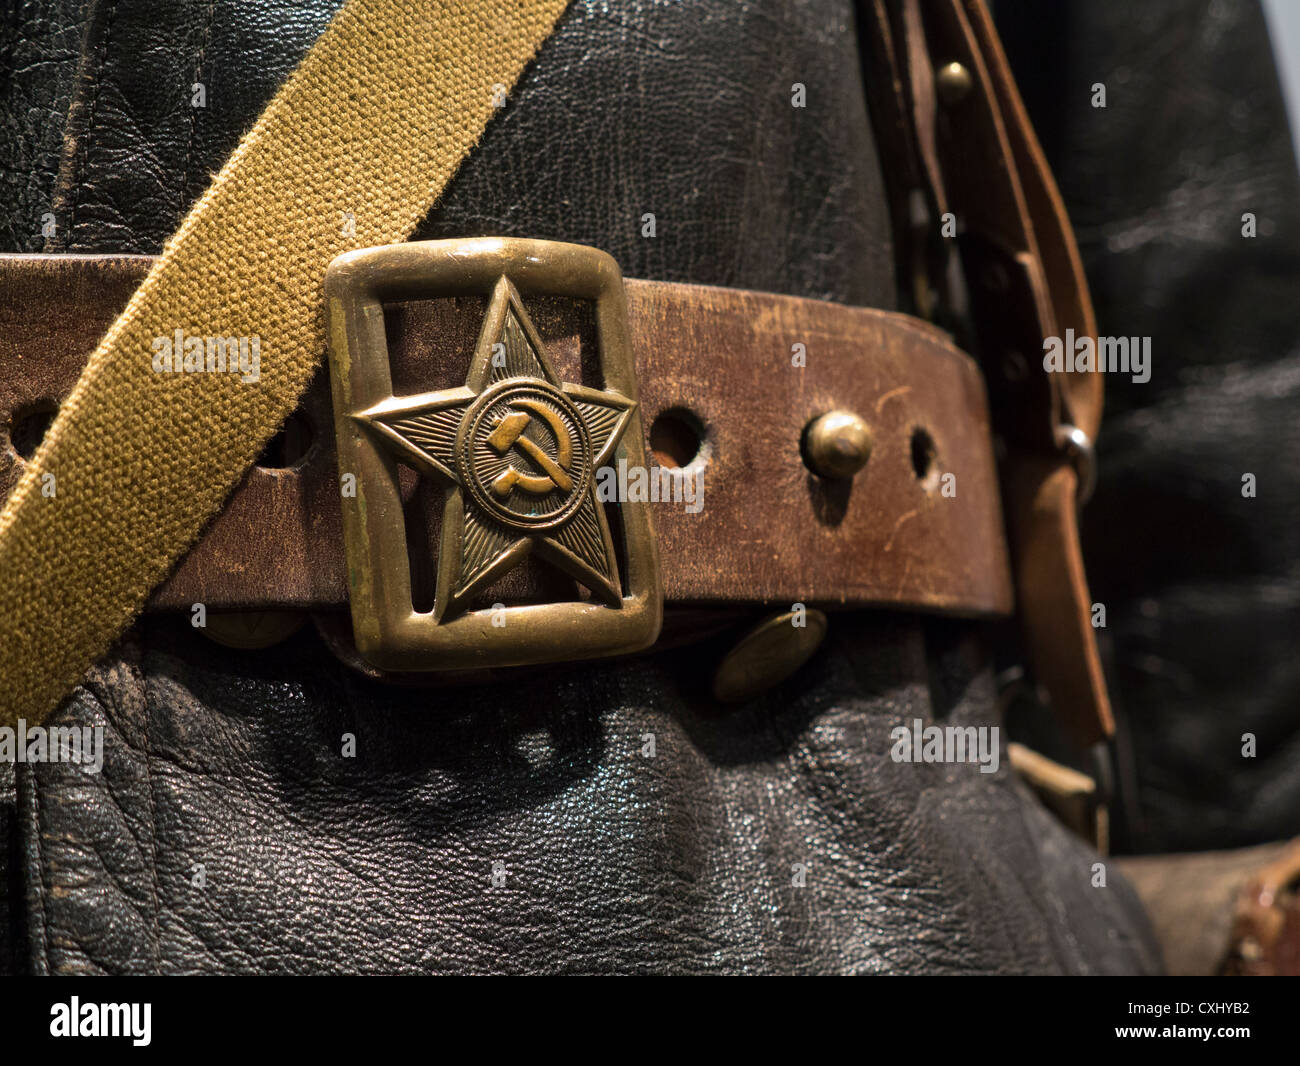 HAMMER & SICKLE Close view on WW2 Russian Red Army soldiers uniform with Hammer and Sickle emblem badge on belt - Stock Image